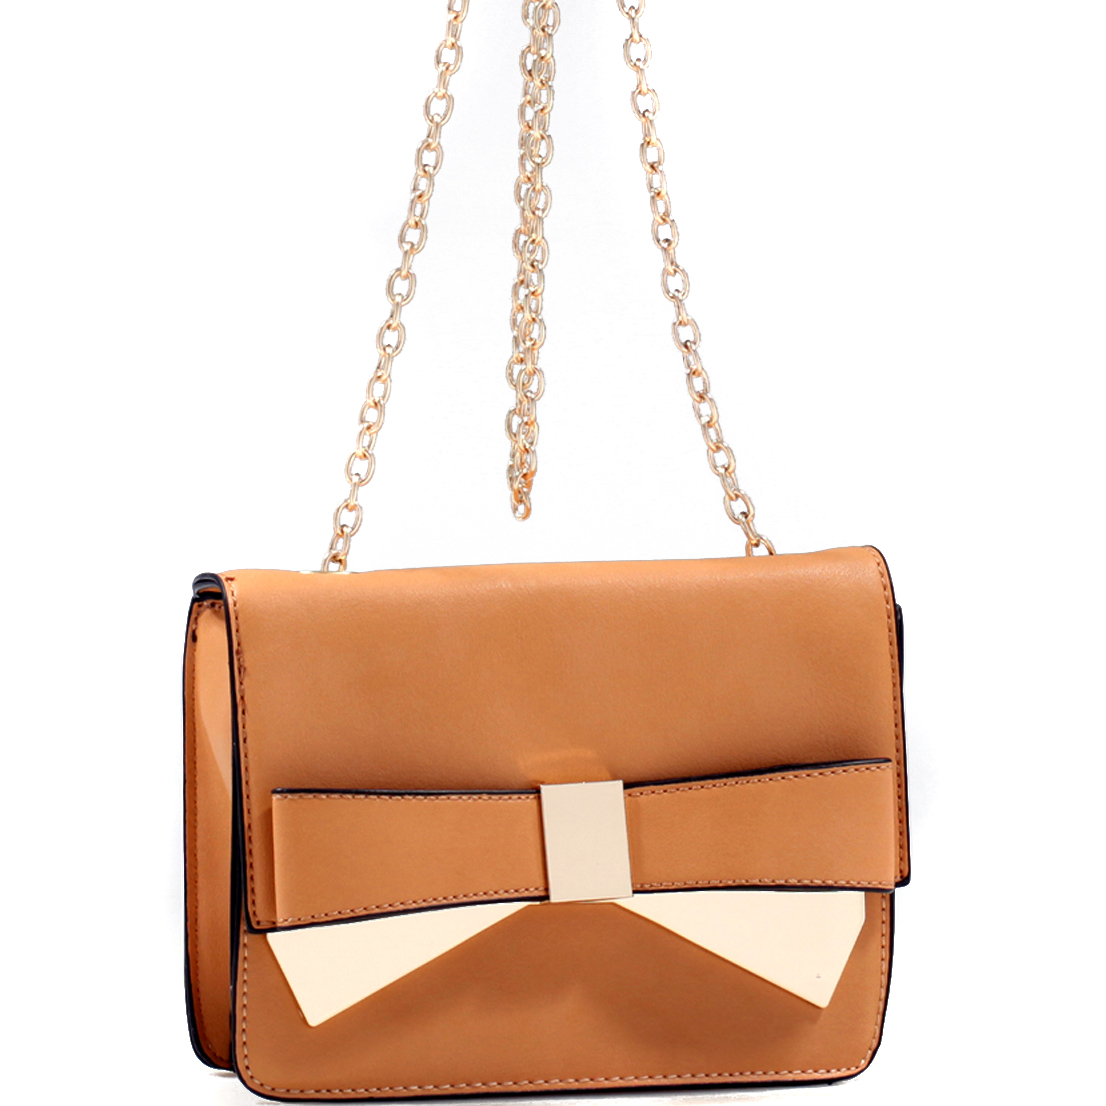 Gold-Tone Chain Strap Bow Crossbody